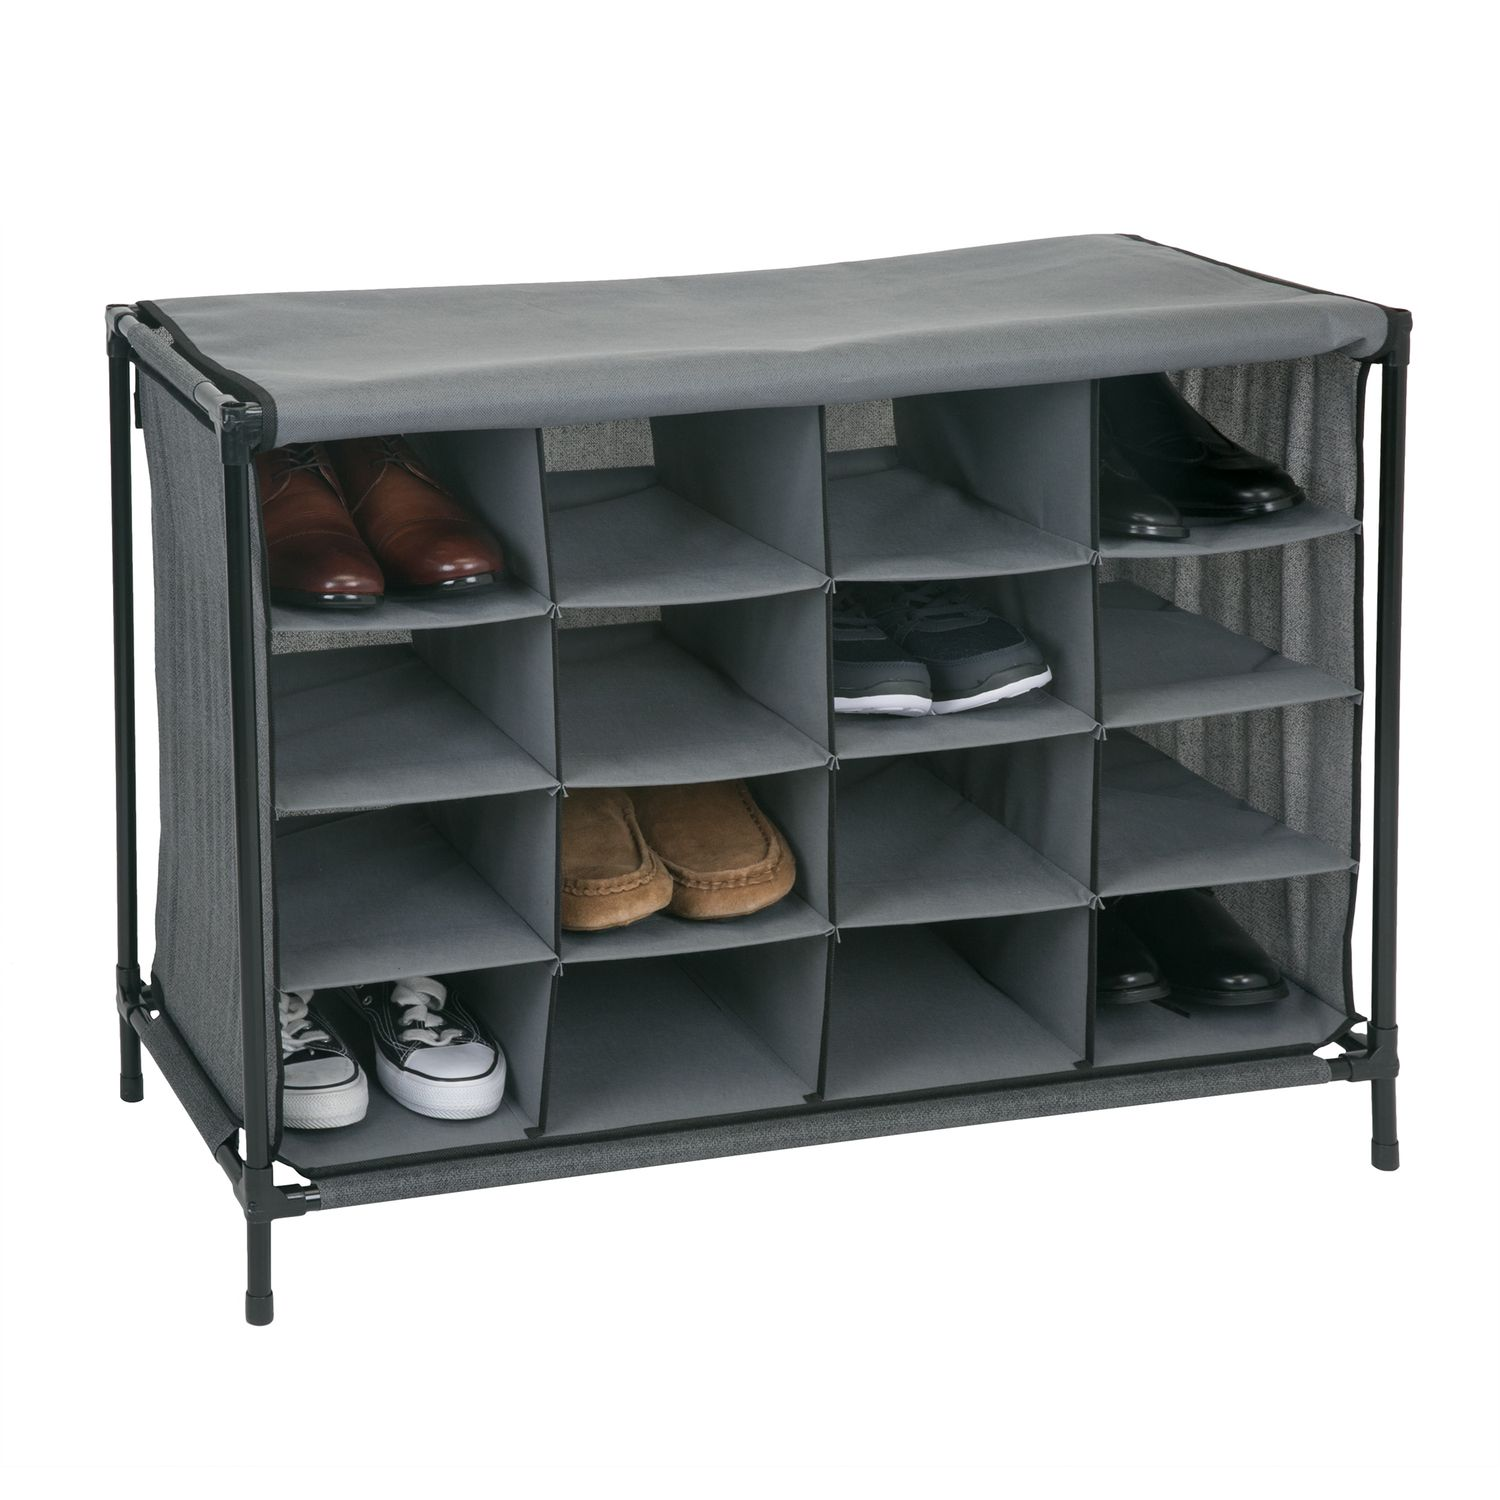 Simplify 16 Compartment Shoe Storage Cubby